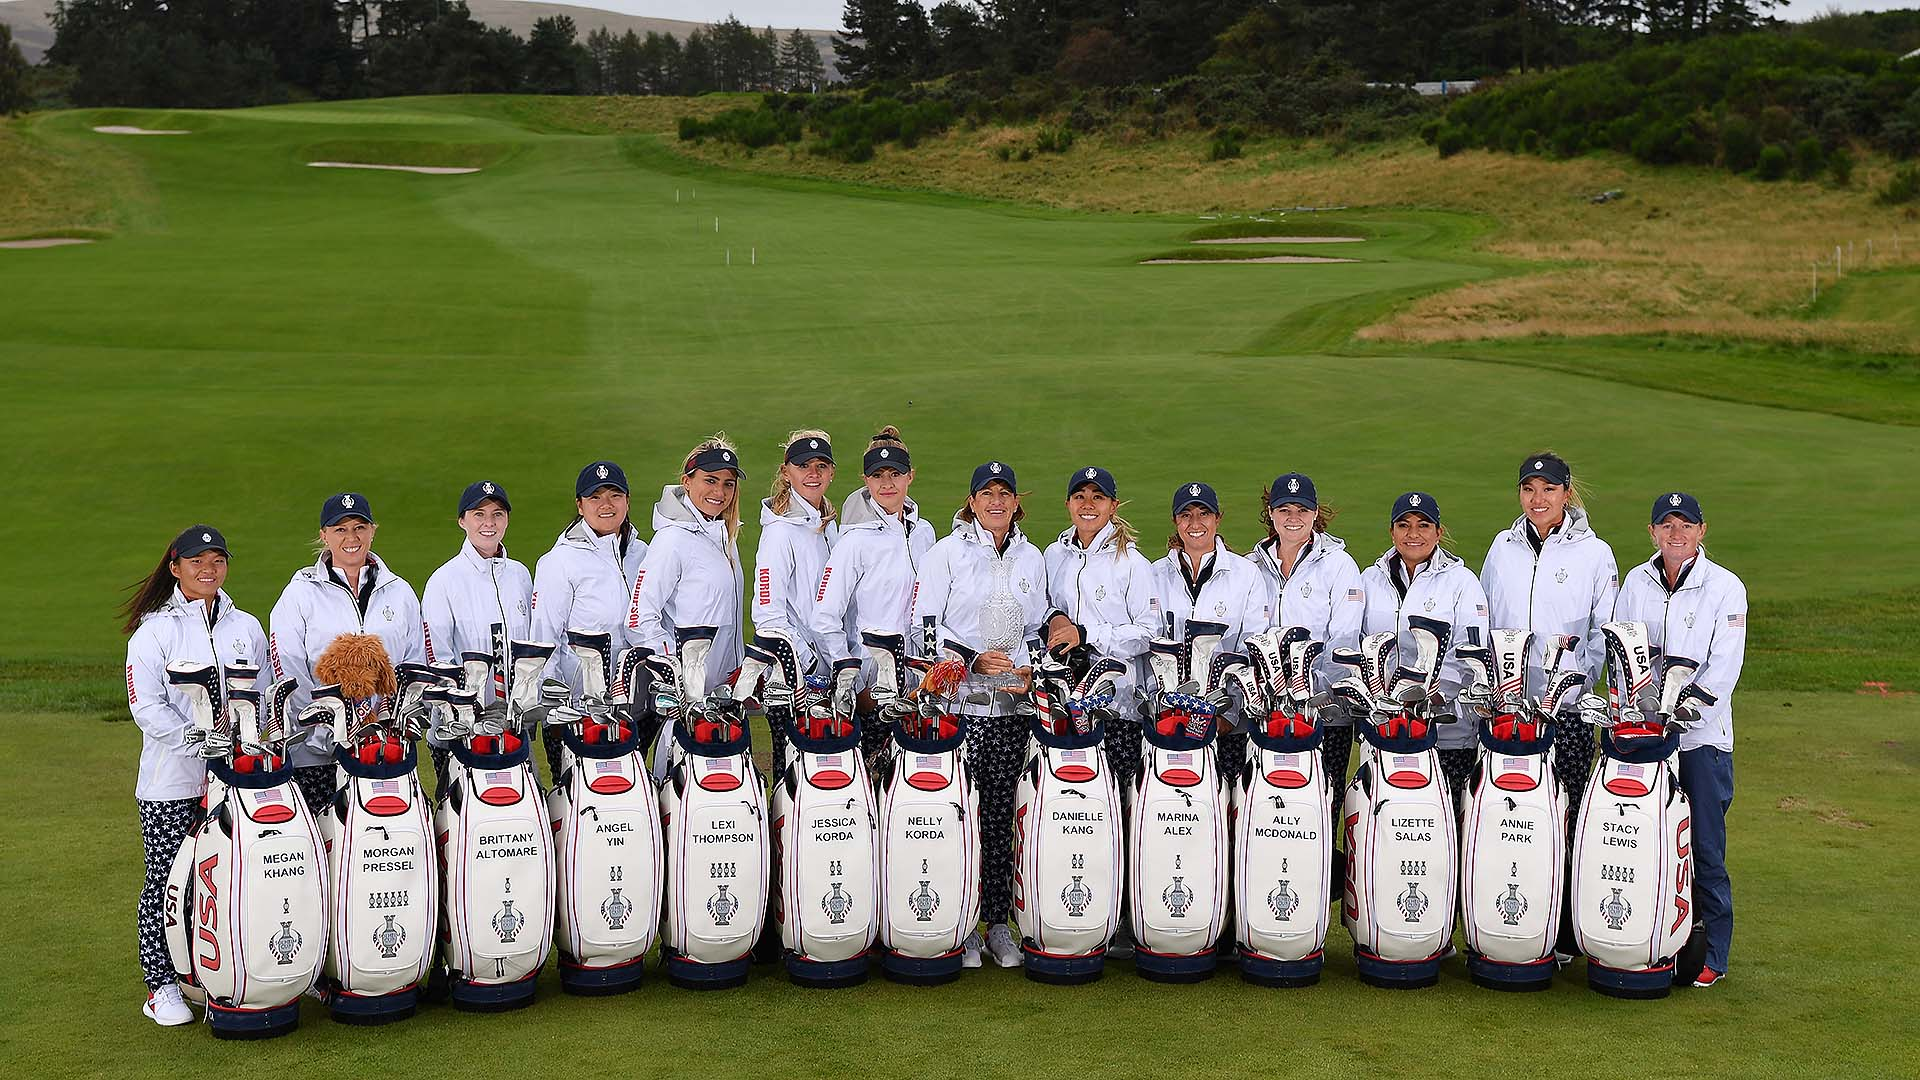 2019 Solheim Cup capsules: Meet the American team | Golf Channel